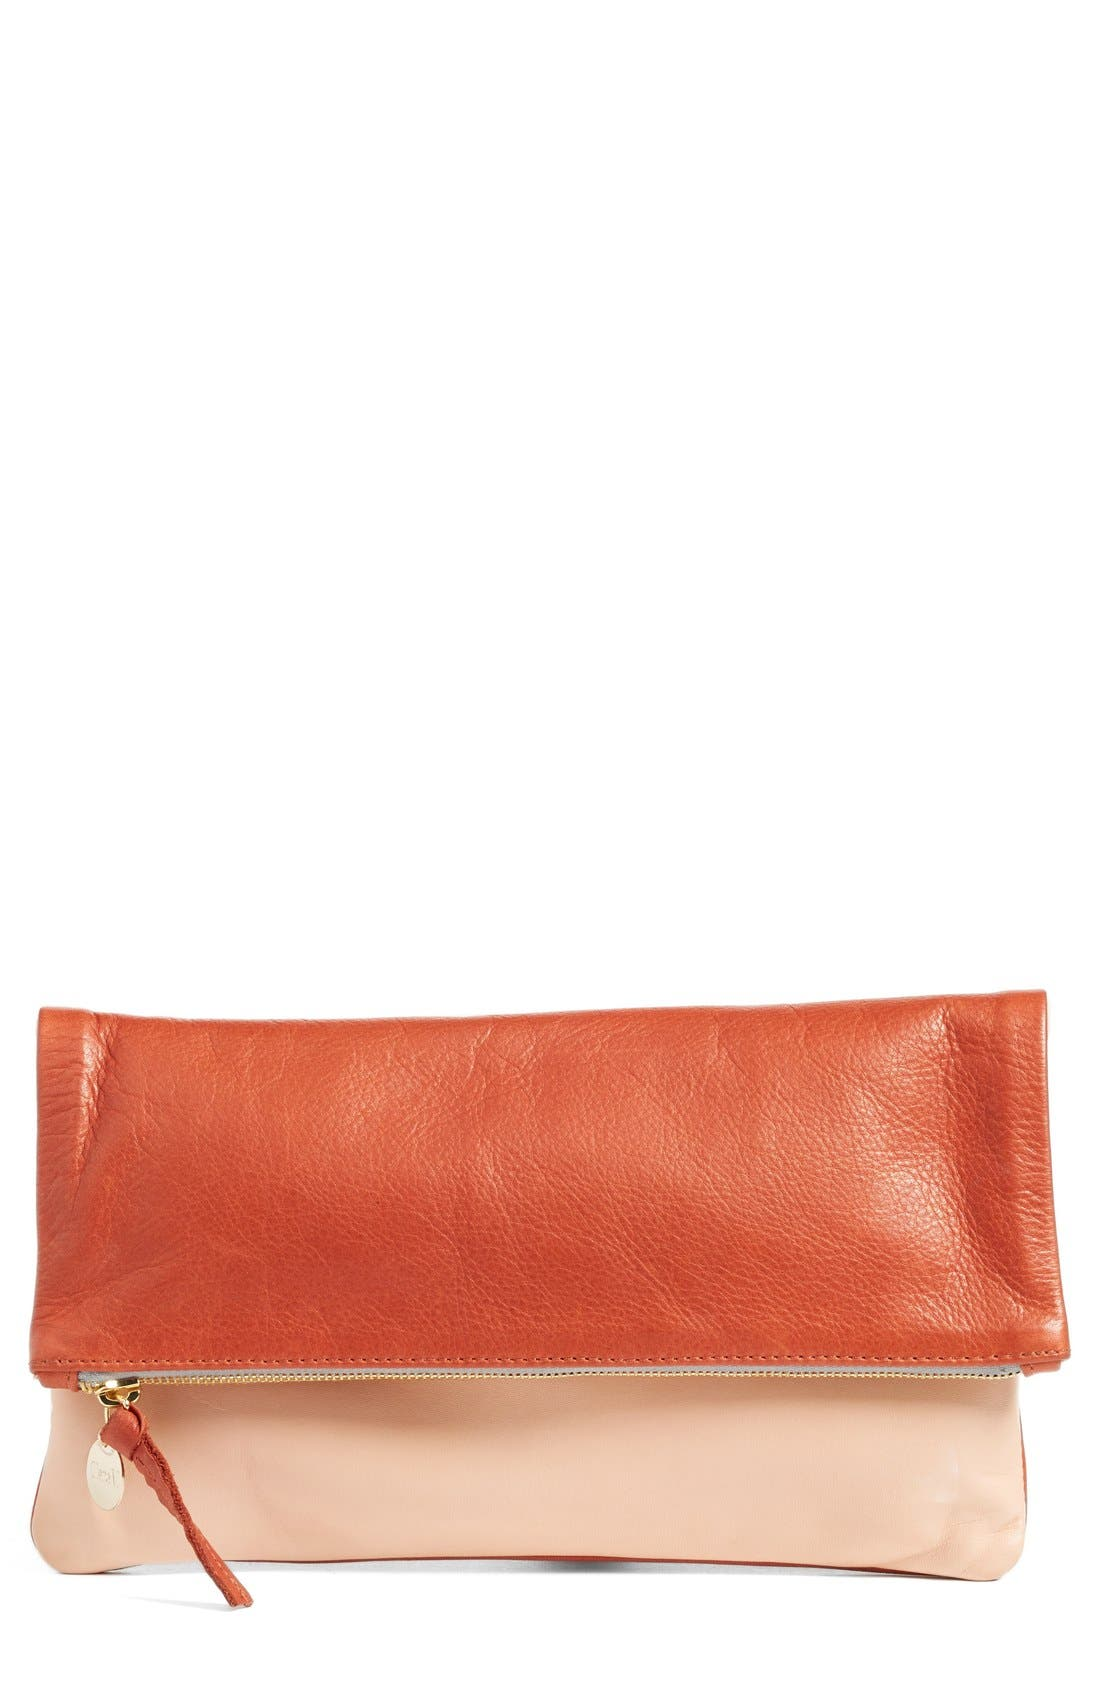 Main Image - Clare V. Colorblock Leather Foldover Clutch